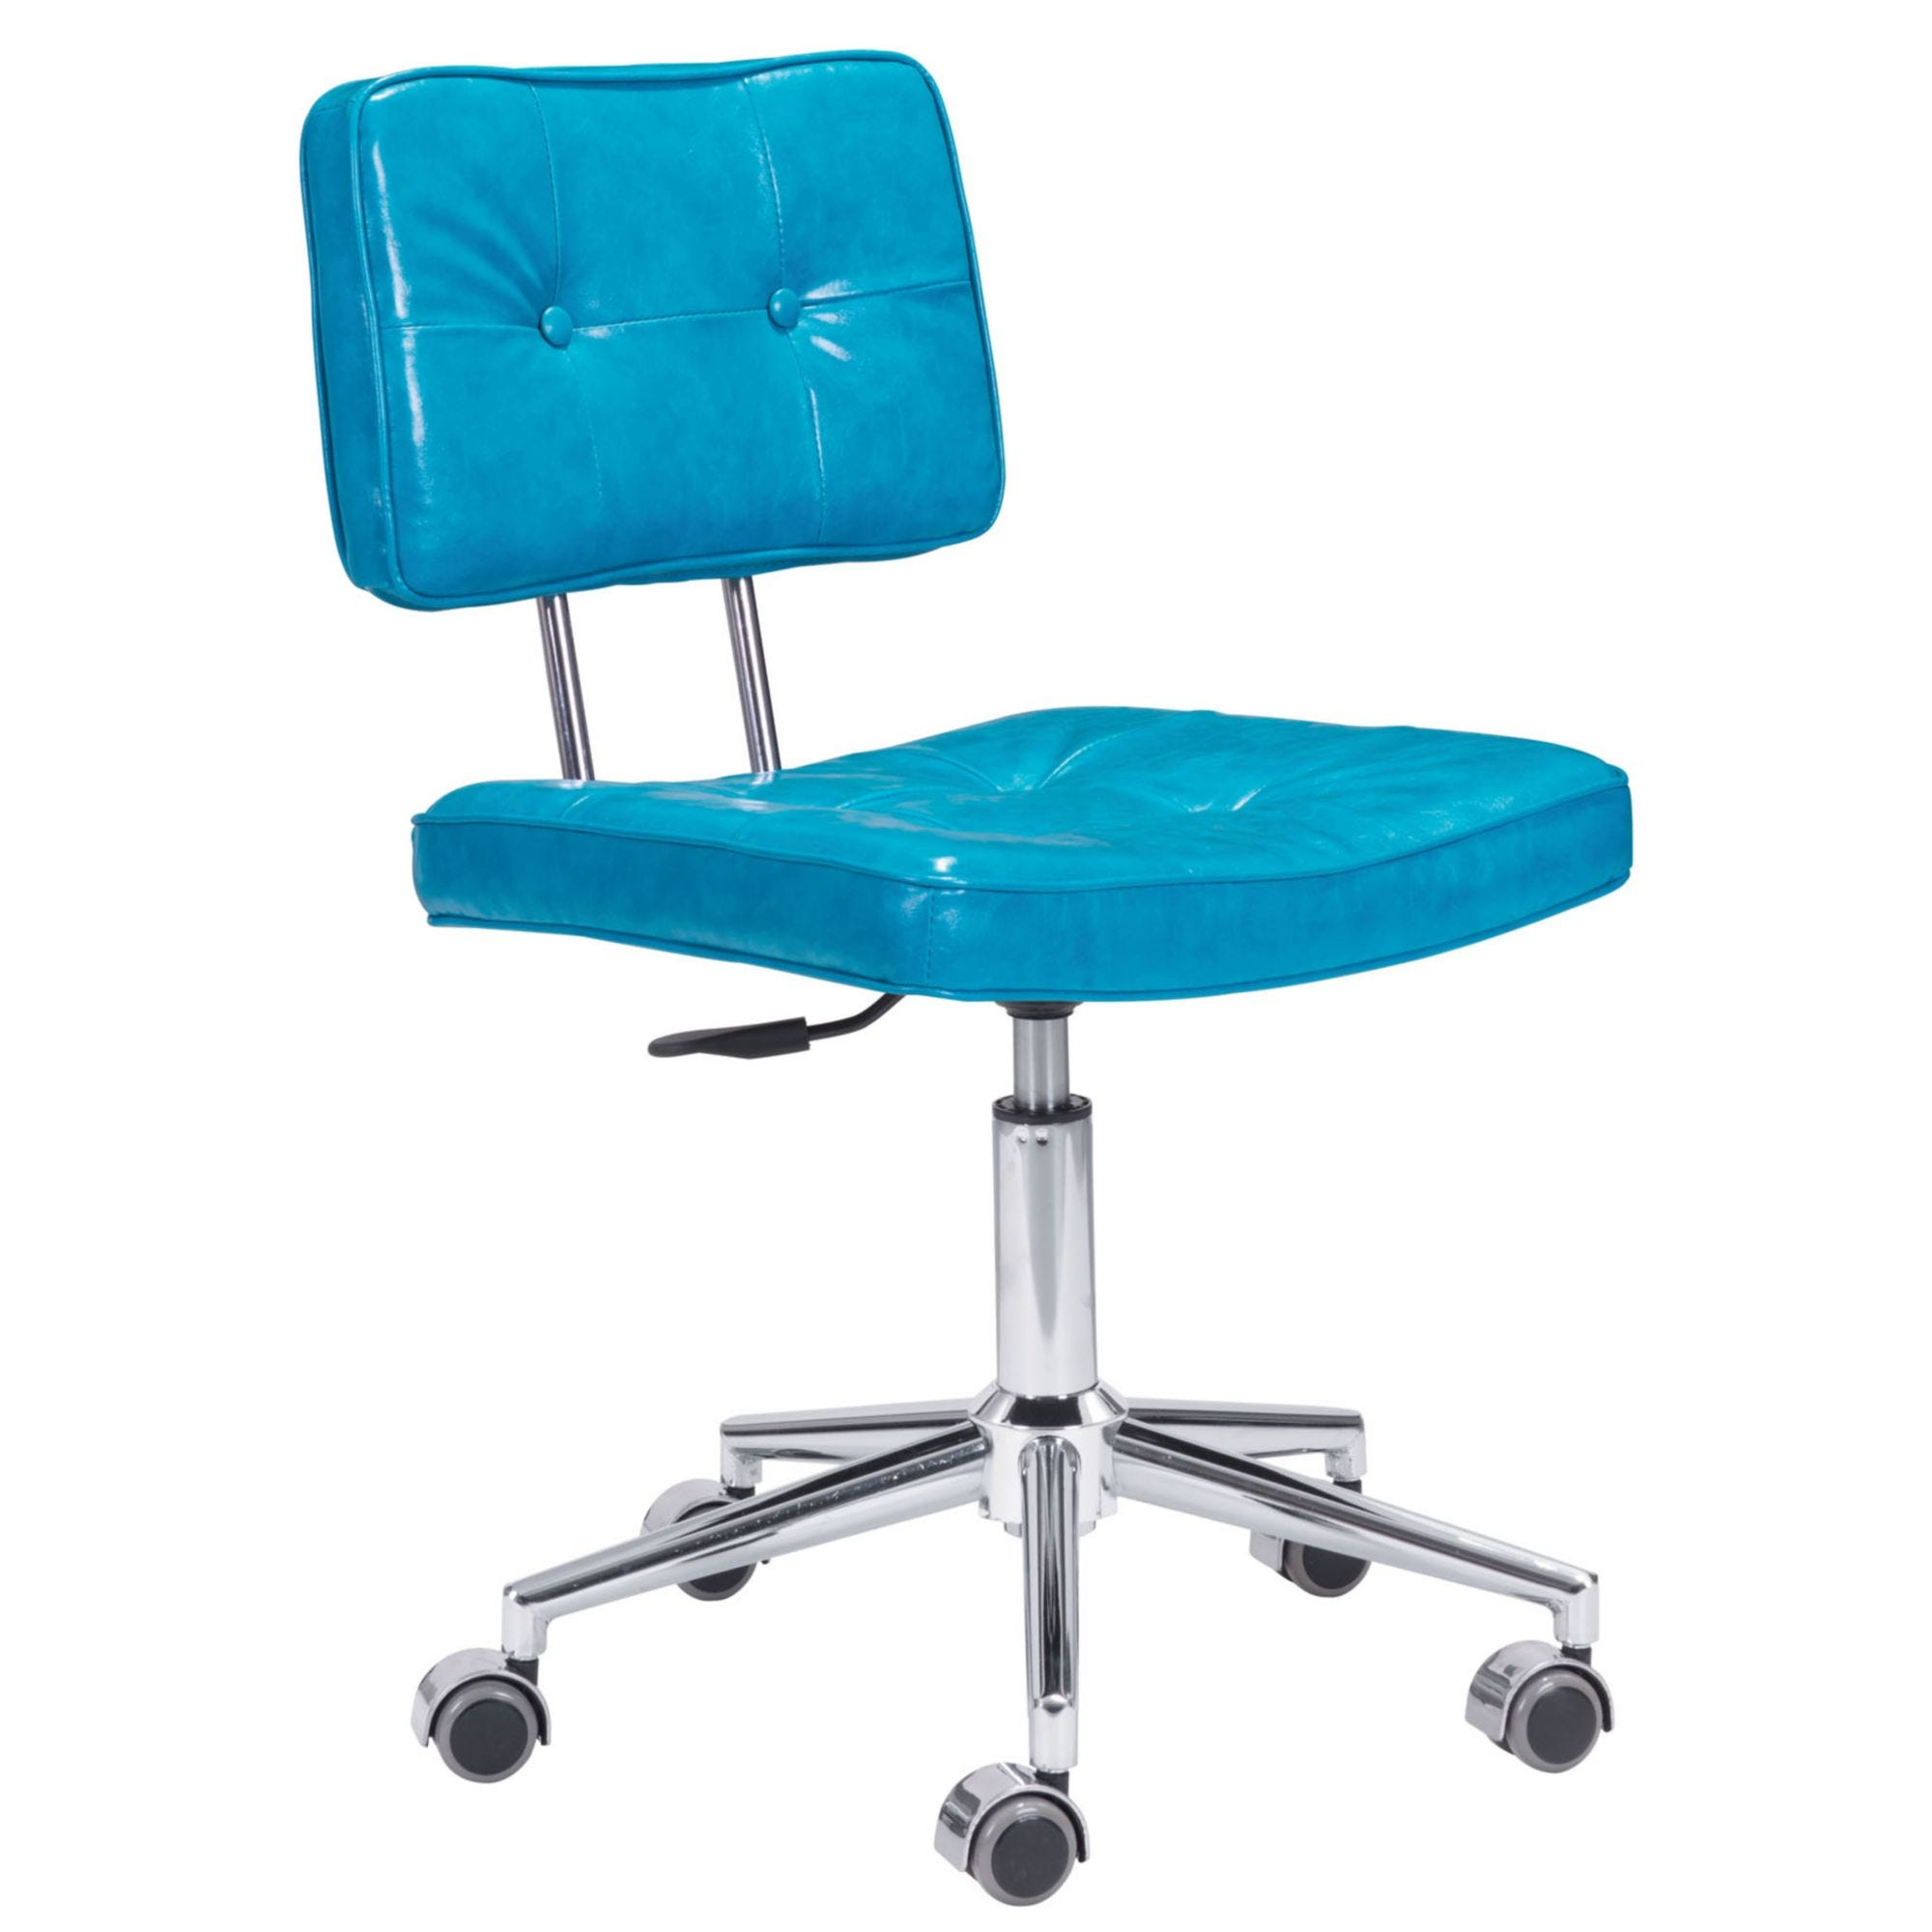 desk image chair ikea and shocking furniture aqua style popular of skalberg sxs swivel sporren black teen